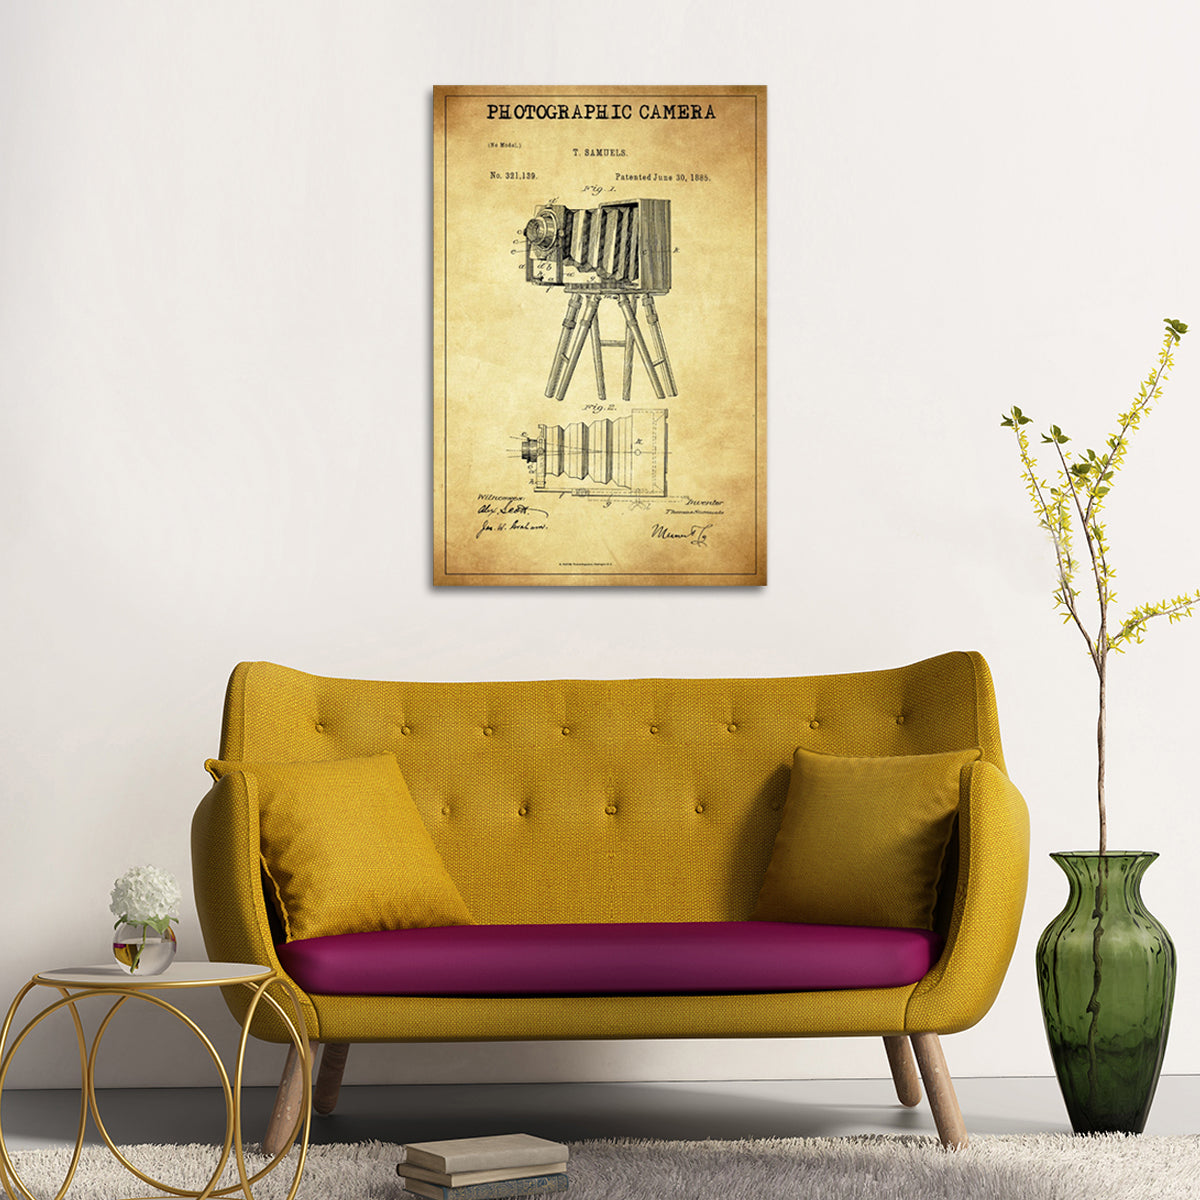 Photographic Camera Patent Canvas Wall Art | ElephantStock